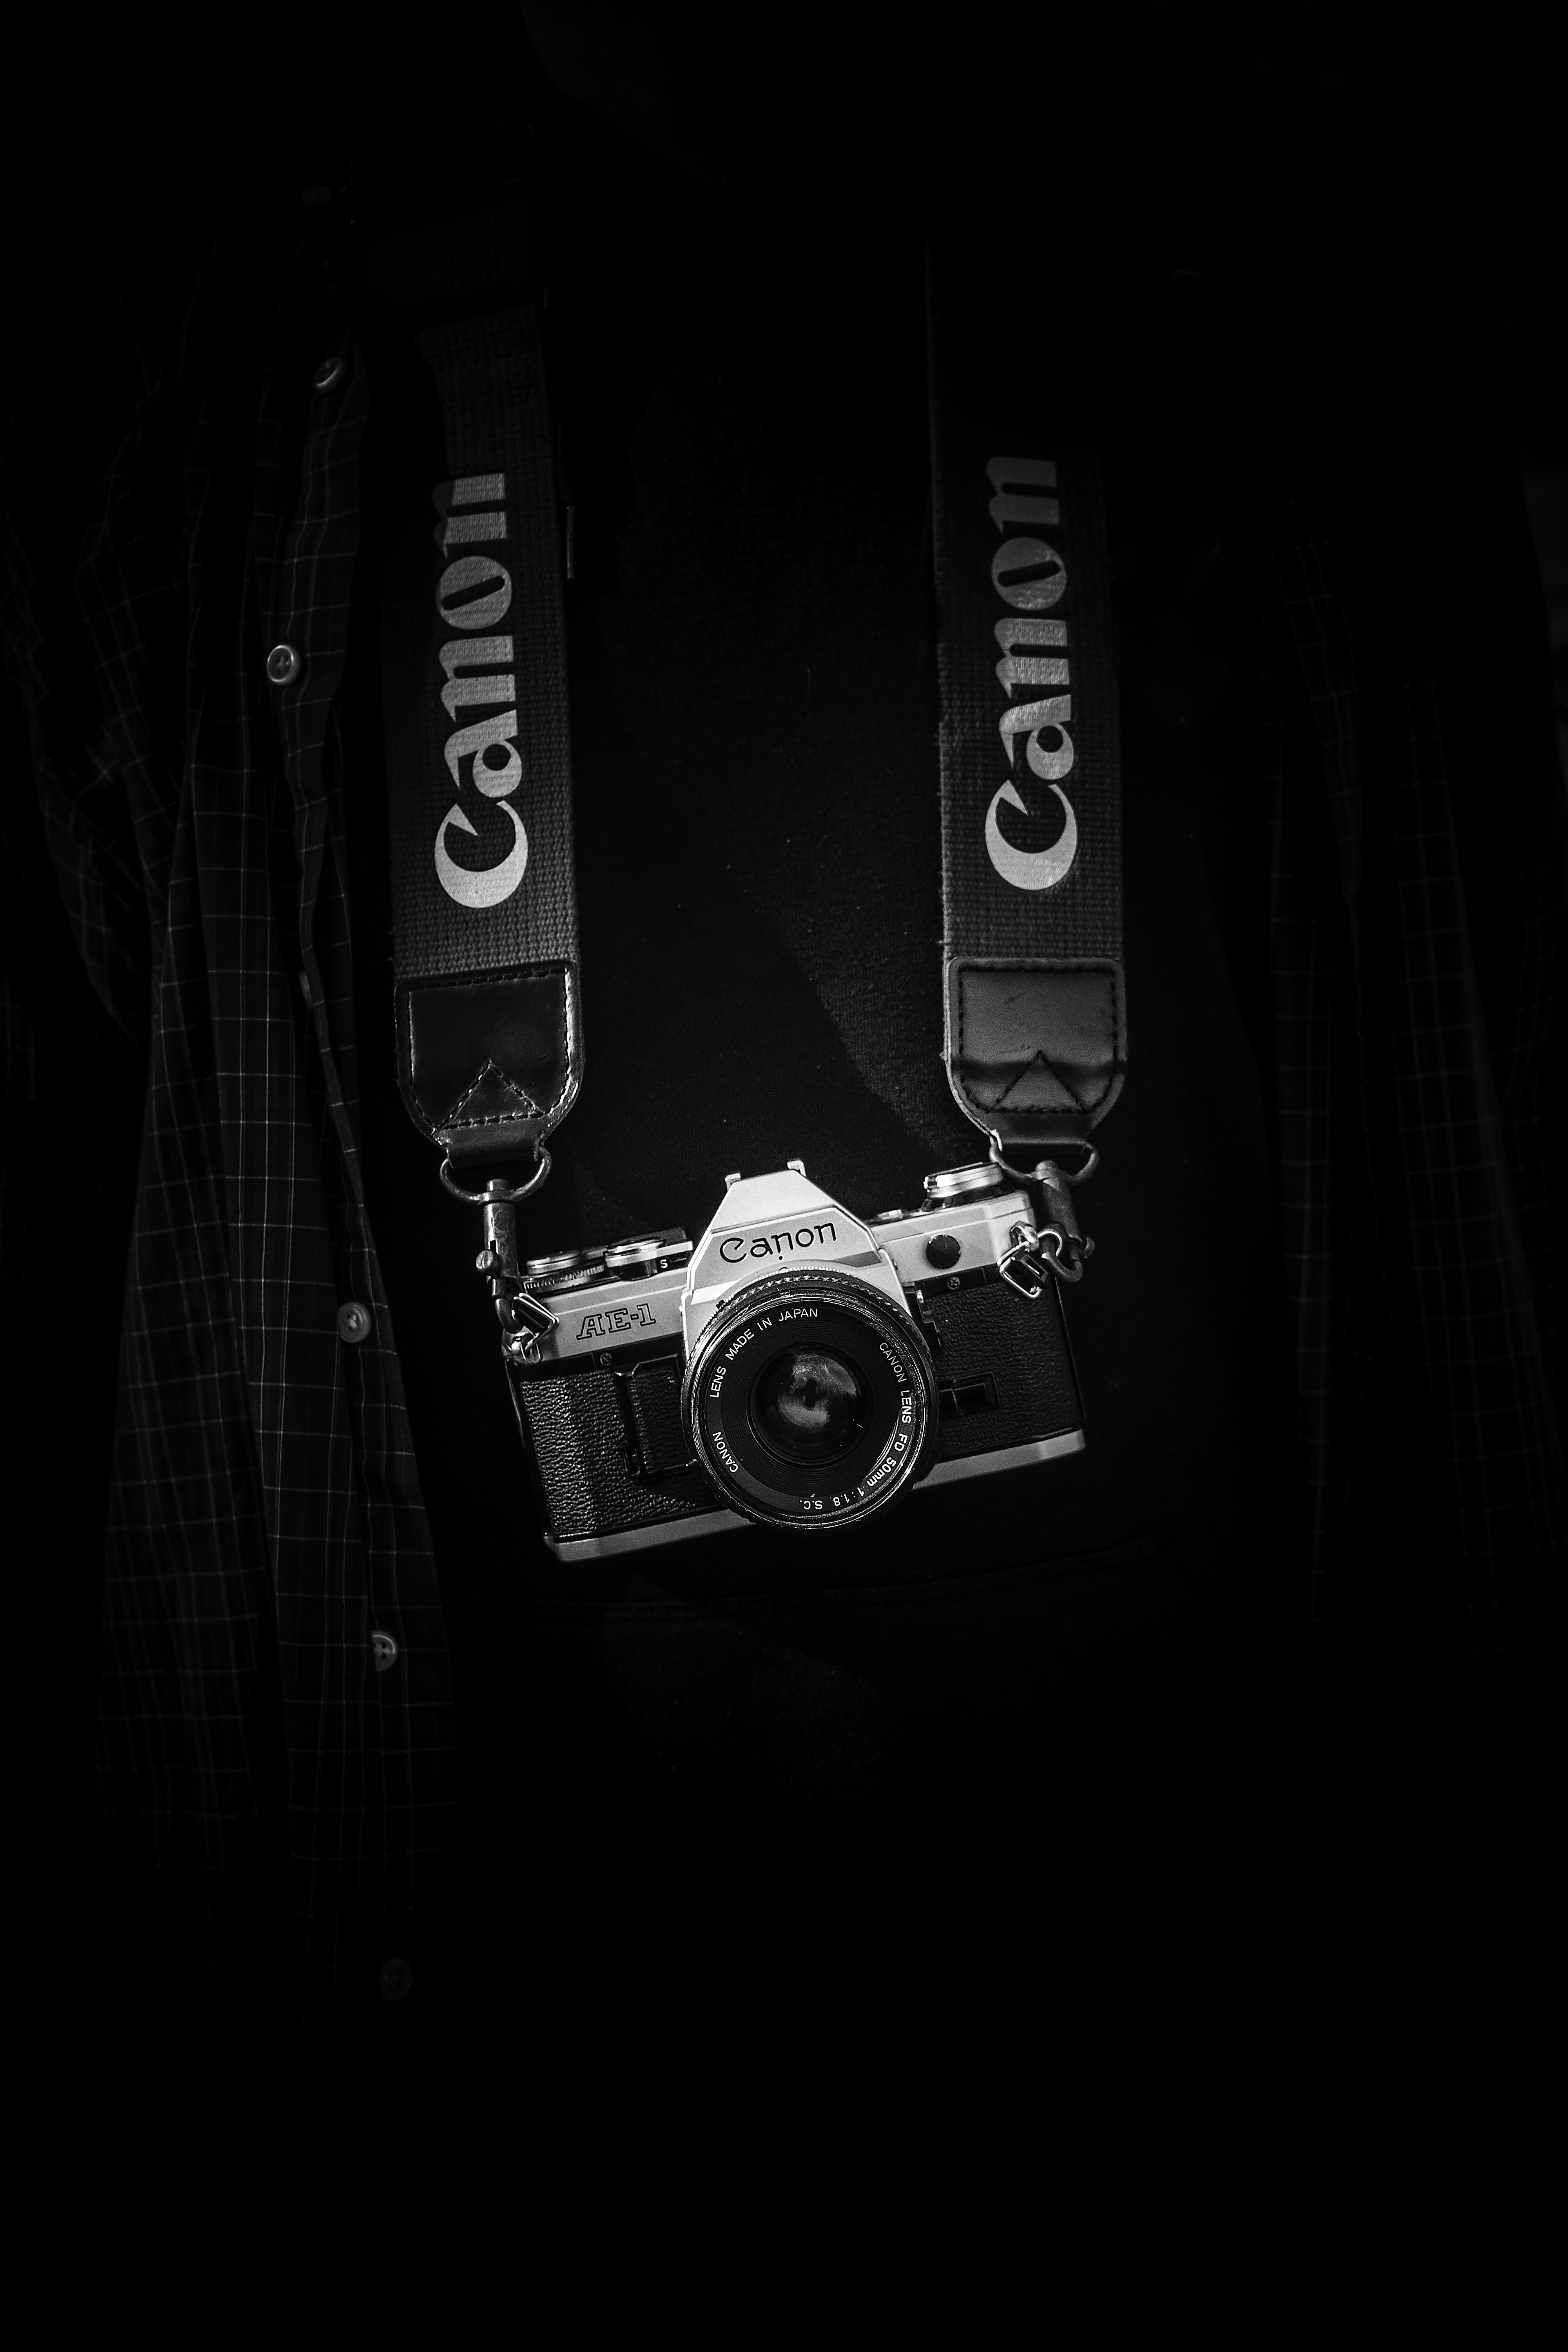 Black and white shot of canon camera with strap on torso with checked shirt